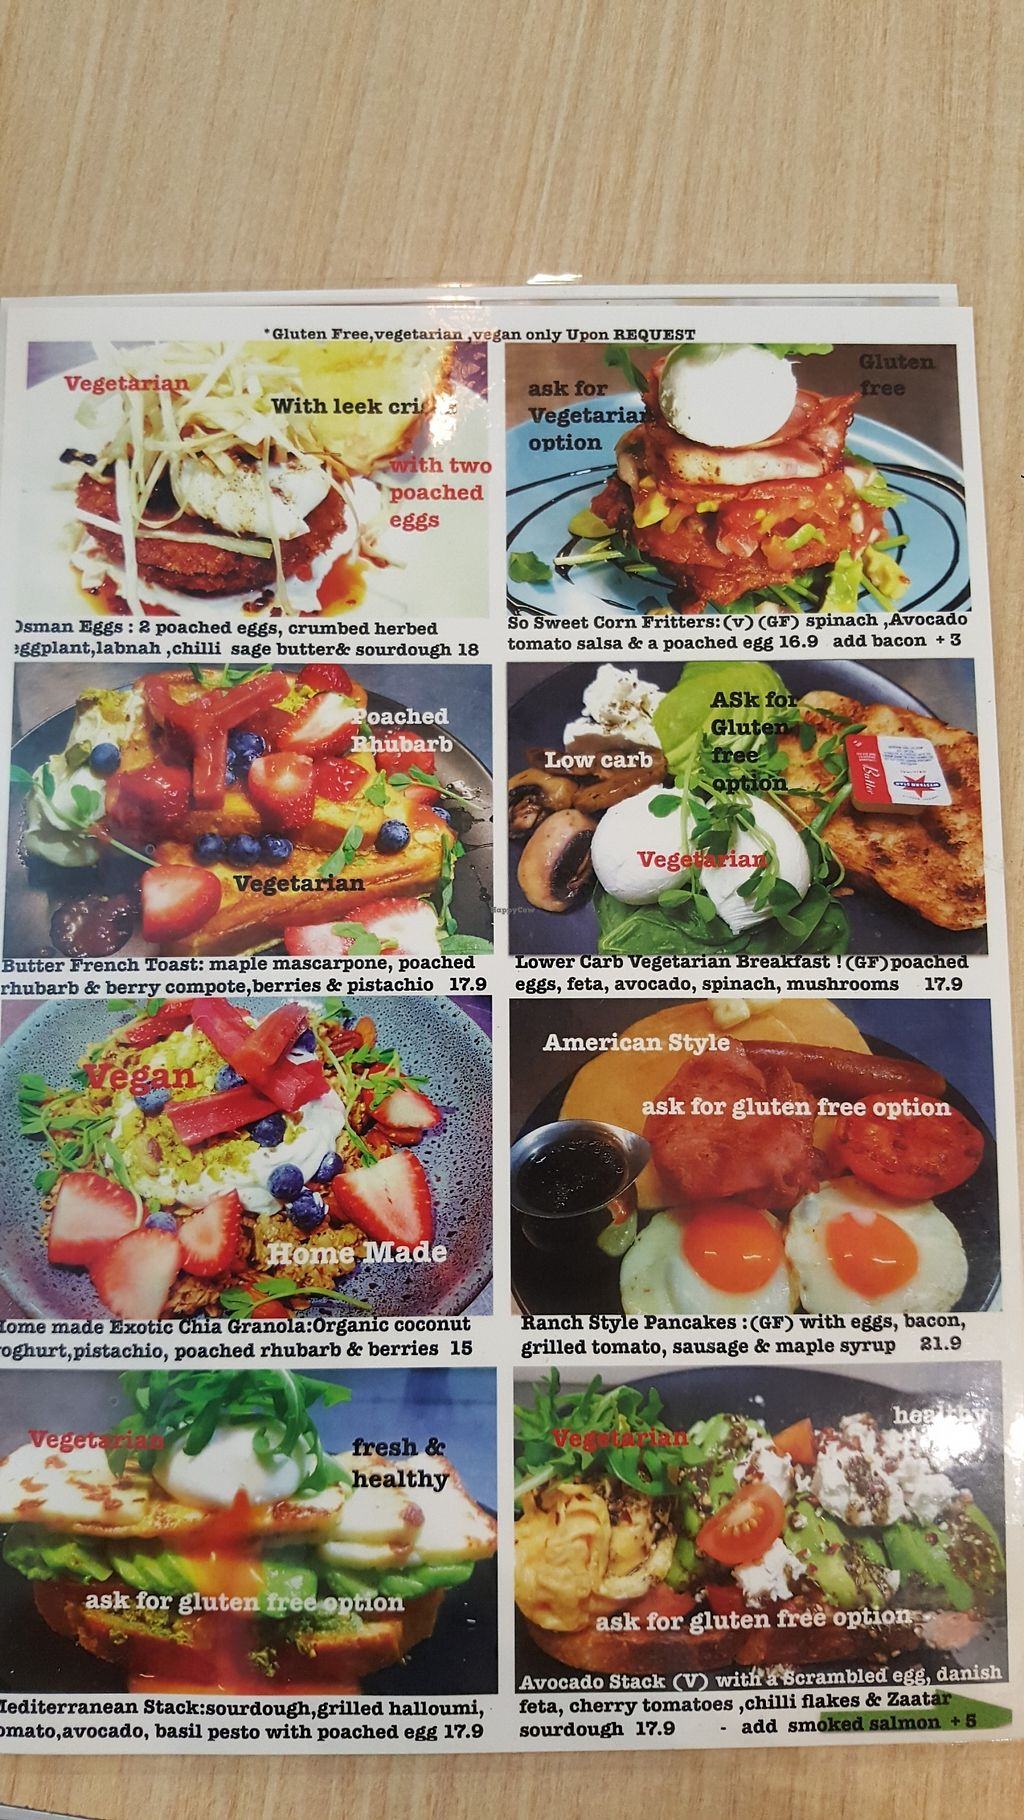 """Photo of Whispers Cafe  by <a href=""""/members/profile/roothee"""">roothee</a> <br/>Picture menu. More options on the normal menu <br/> December 14, 2017  - <a href='/contact/abuse/image/107209/335636'>Report</a>"""